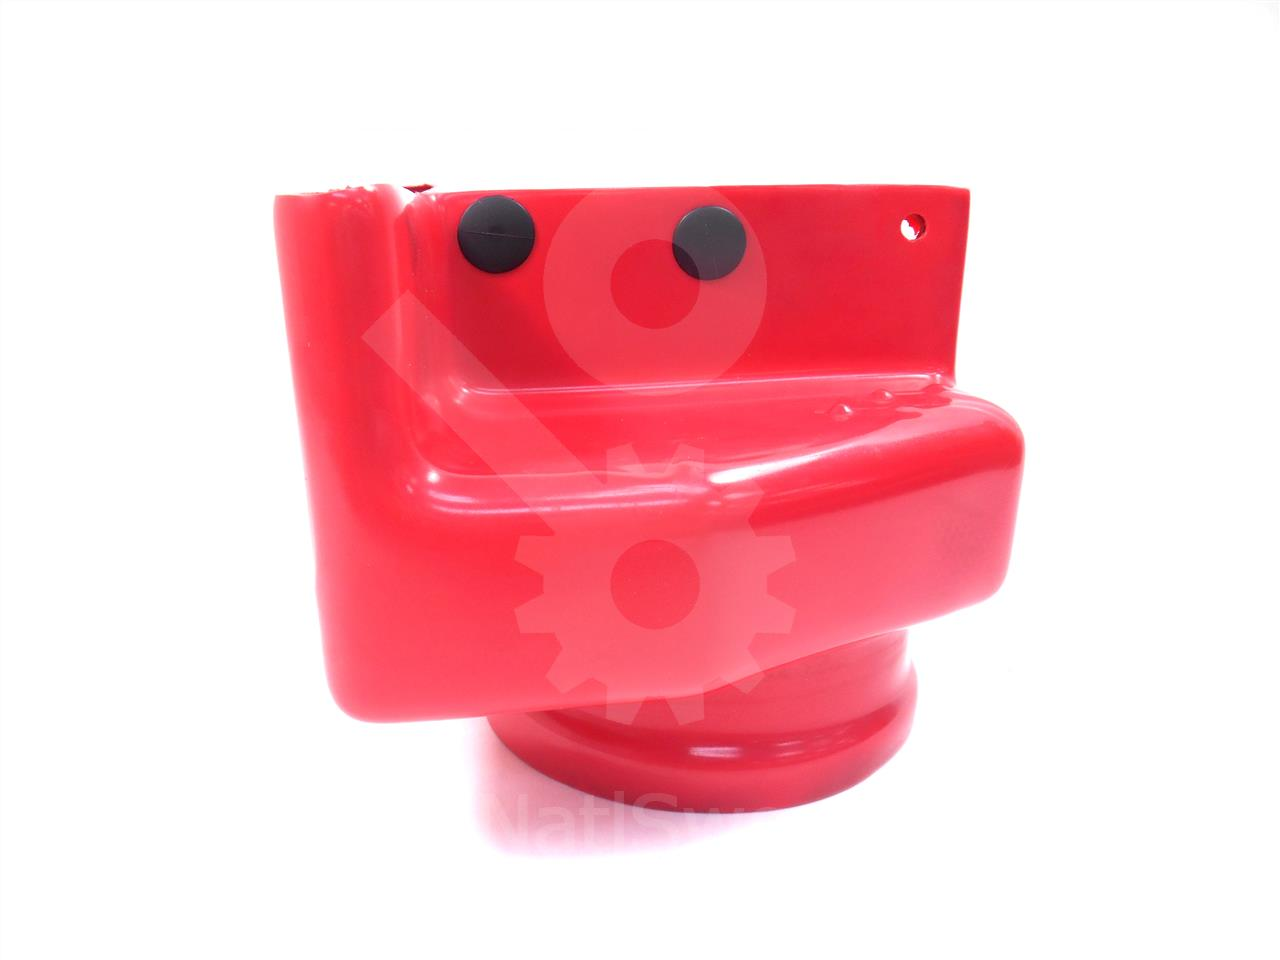 036-25-6 BUS BOOT 90 DEGREE 1/2 X 6 INCH FOR SWITCHGEAR